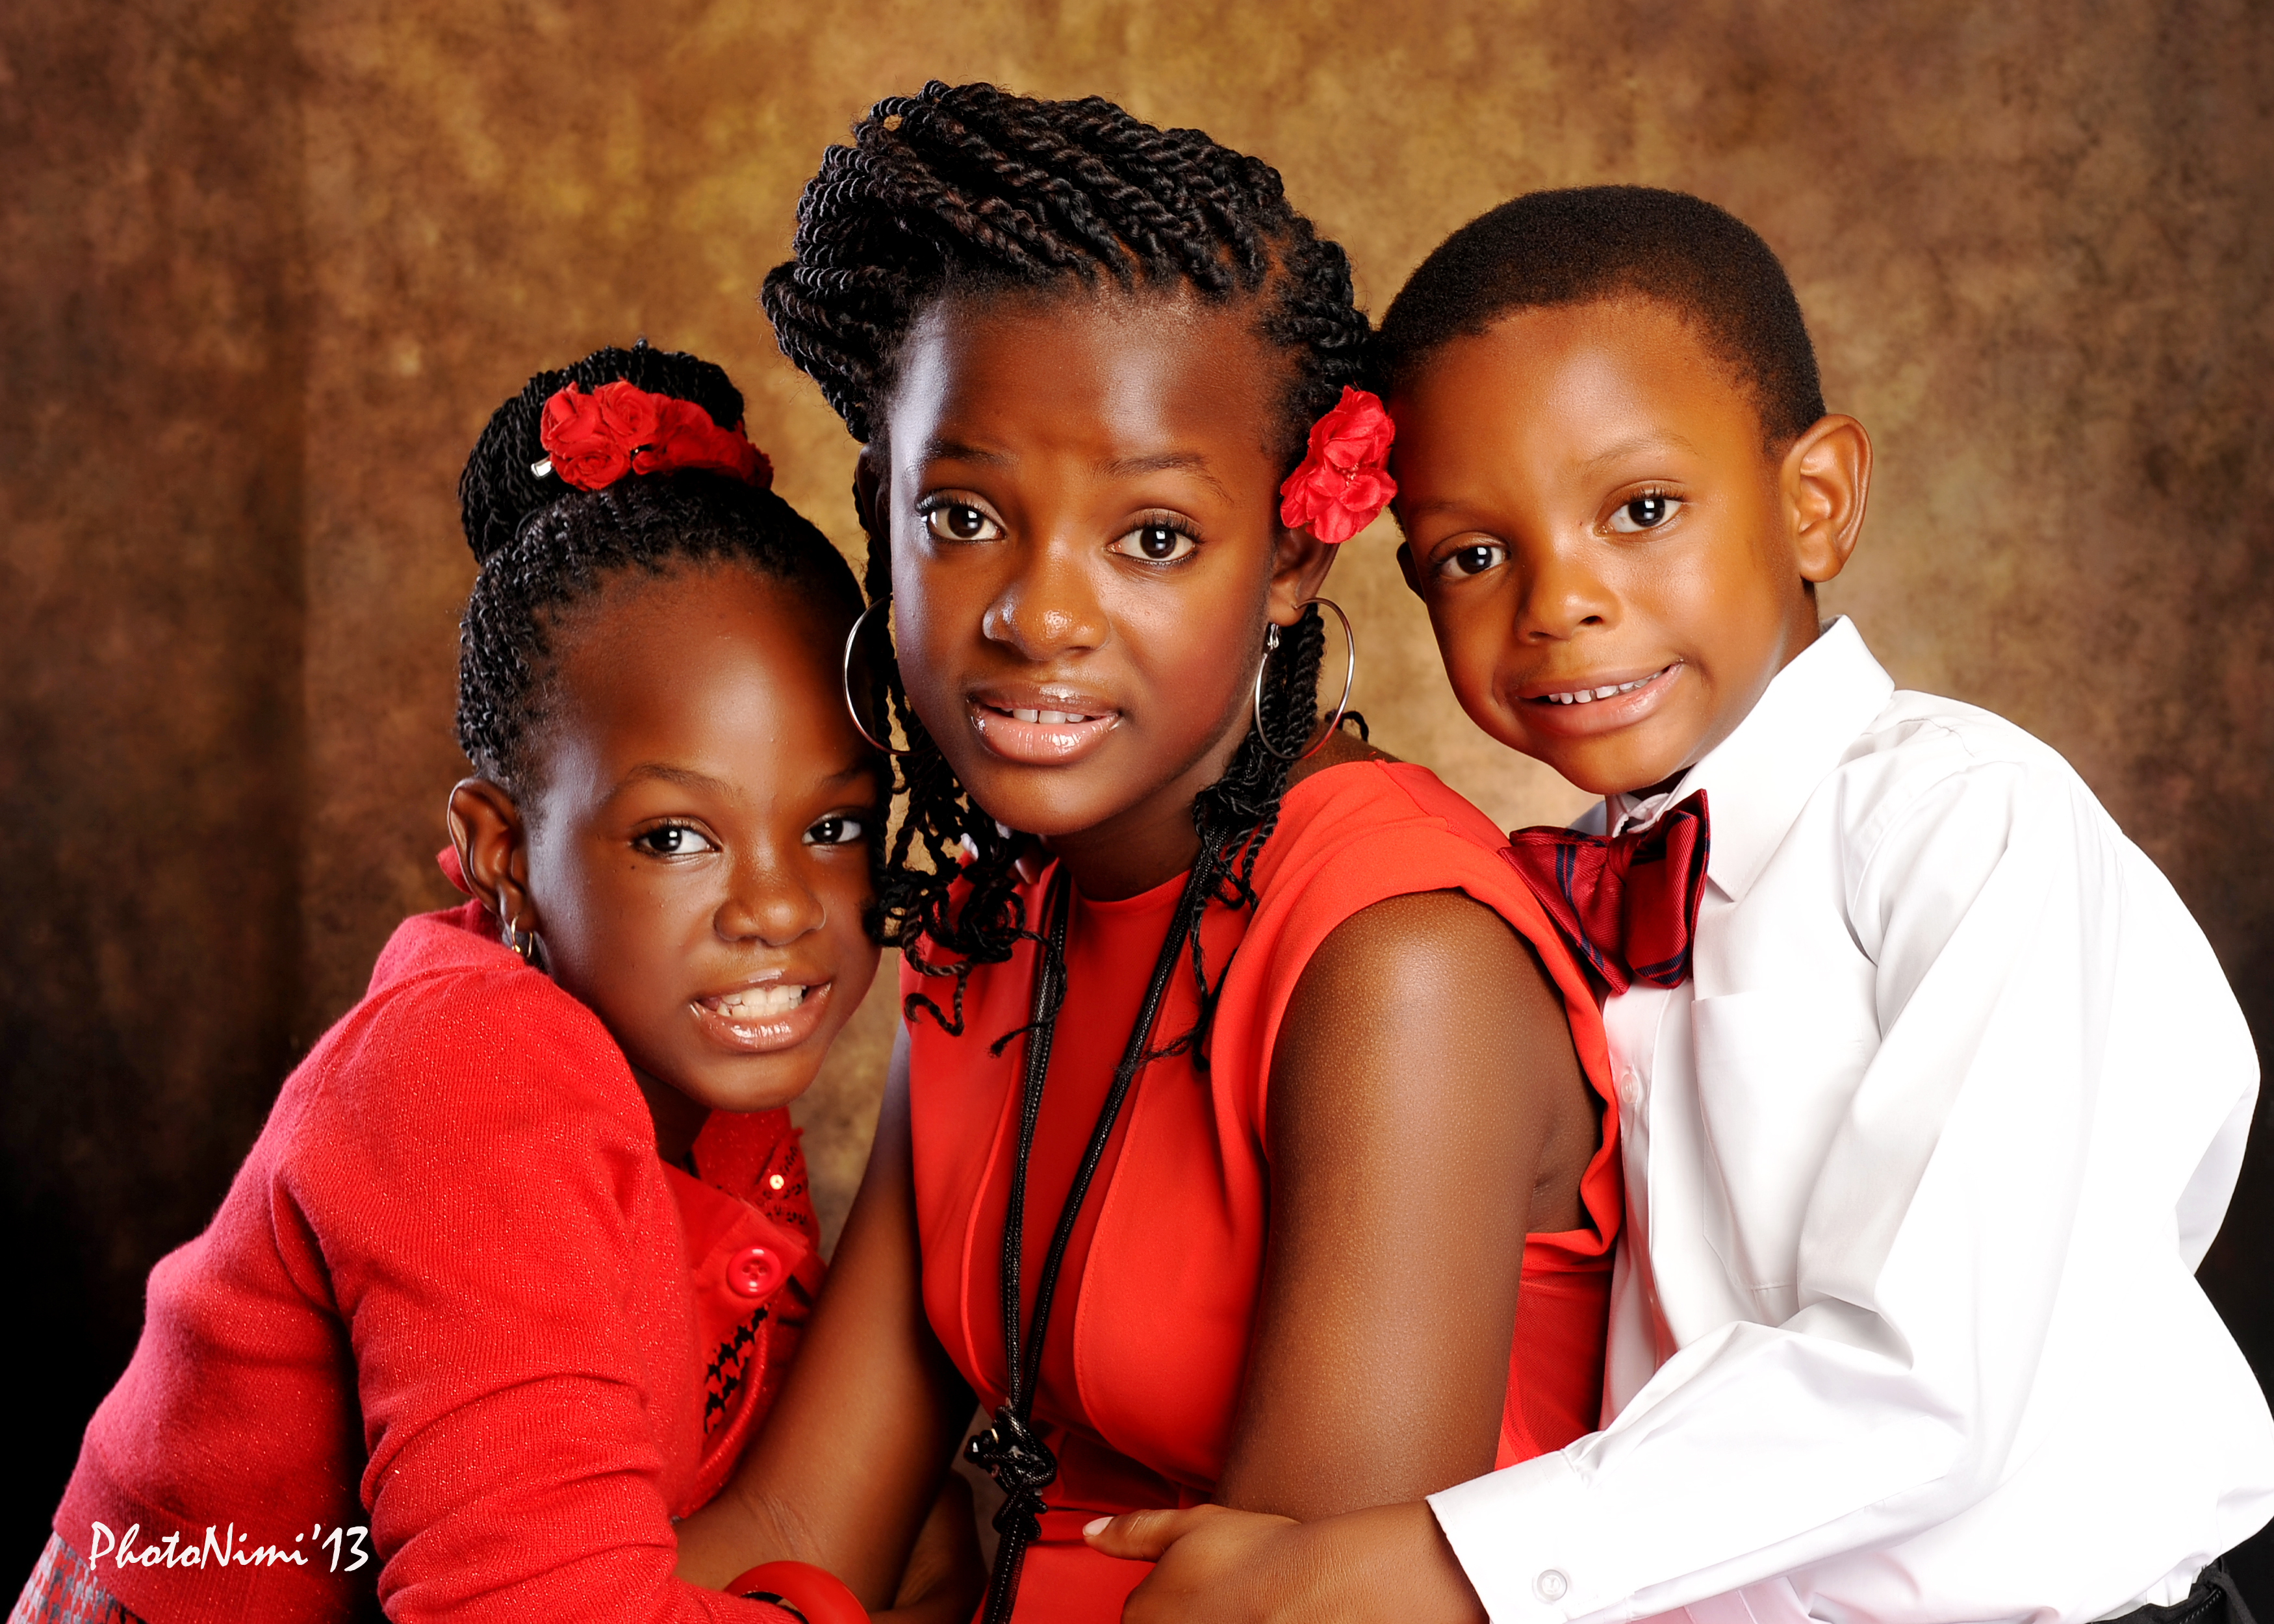 lovely children in white and red, photonimi